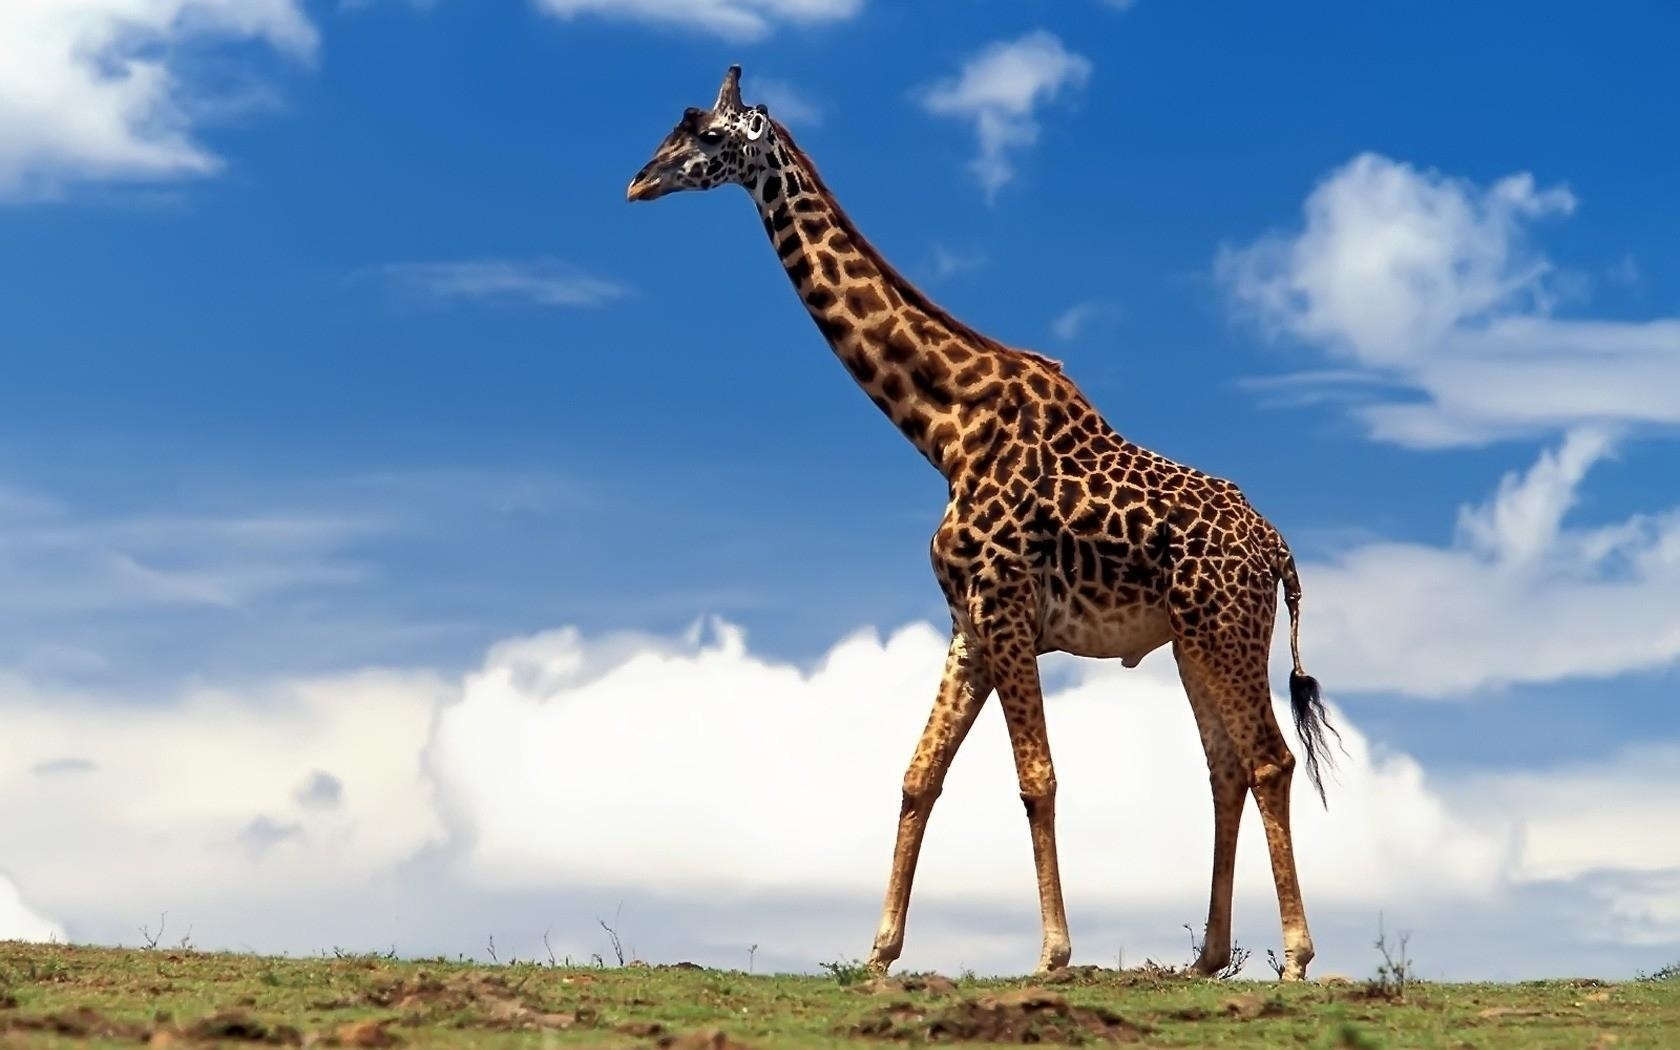 27952 download wallpaper Animals, Giraffes screensavers and pictures for free